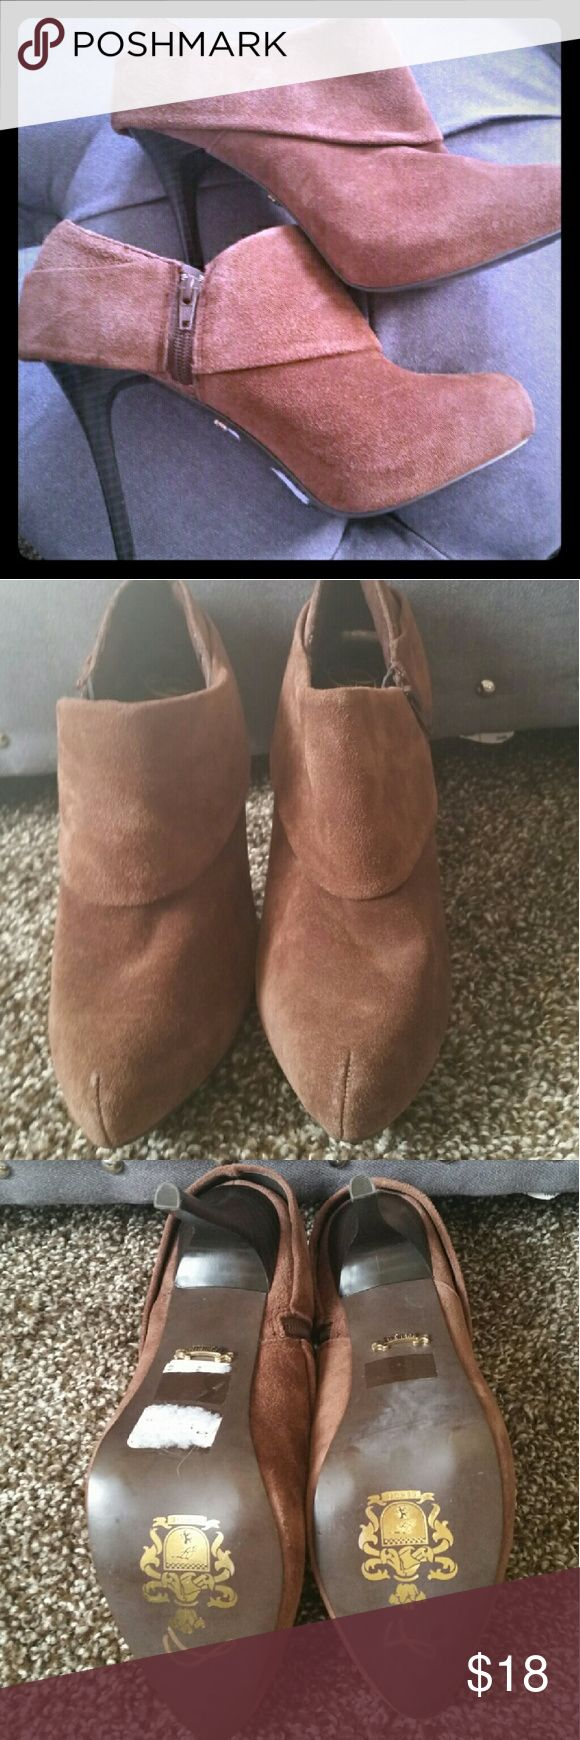 Brown Leather Fergie Booties Super cute brown leather foldover booties. Side zip. Size 8.5 - bought on a whim even though I wear a size 8.  Worn twice, their next life is with you! Fergie Shoes Ankle Boots & Booties